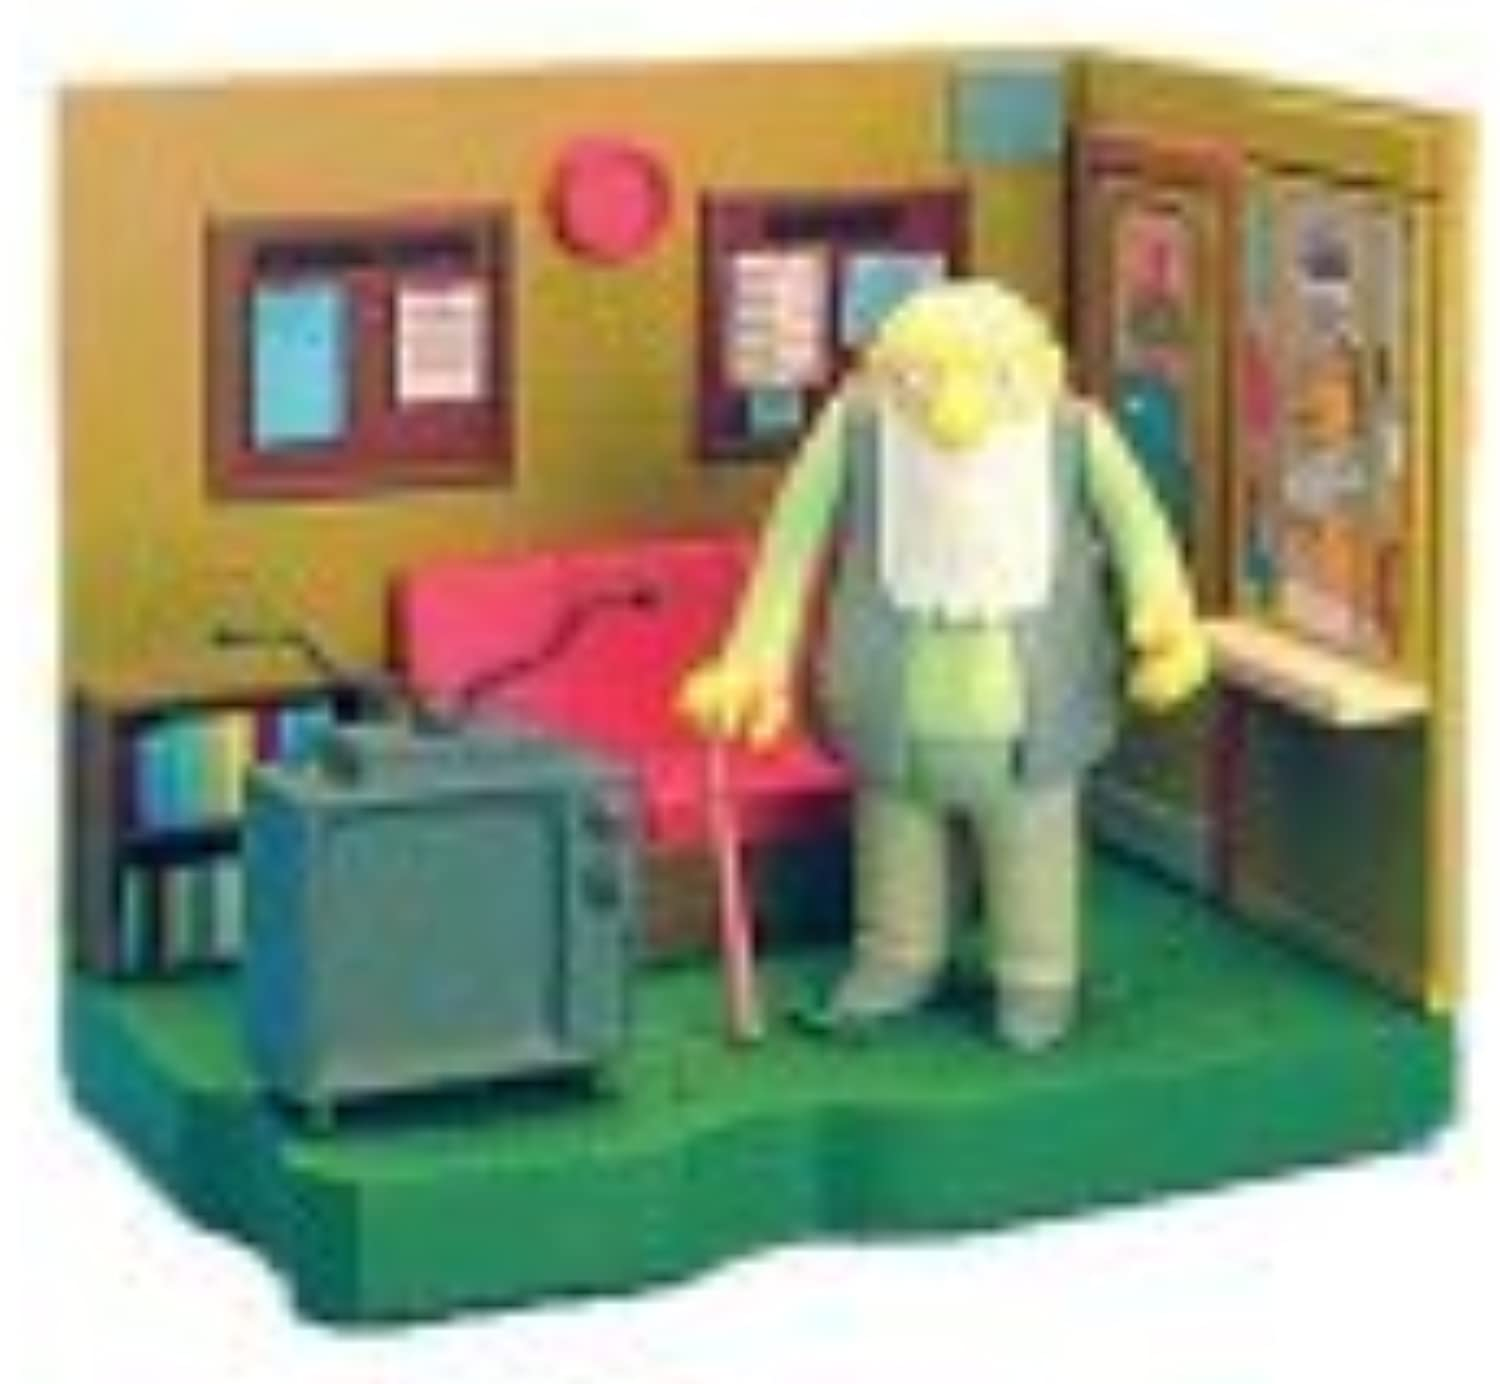 The Simpsons Series 8 Playset Springfield Retirement Castle with Jasper [Toy] by The Simpsons